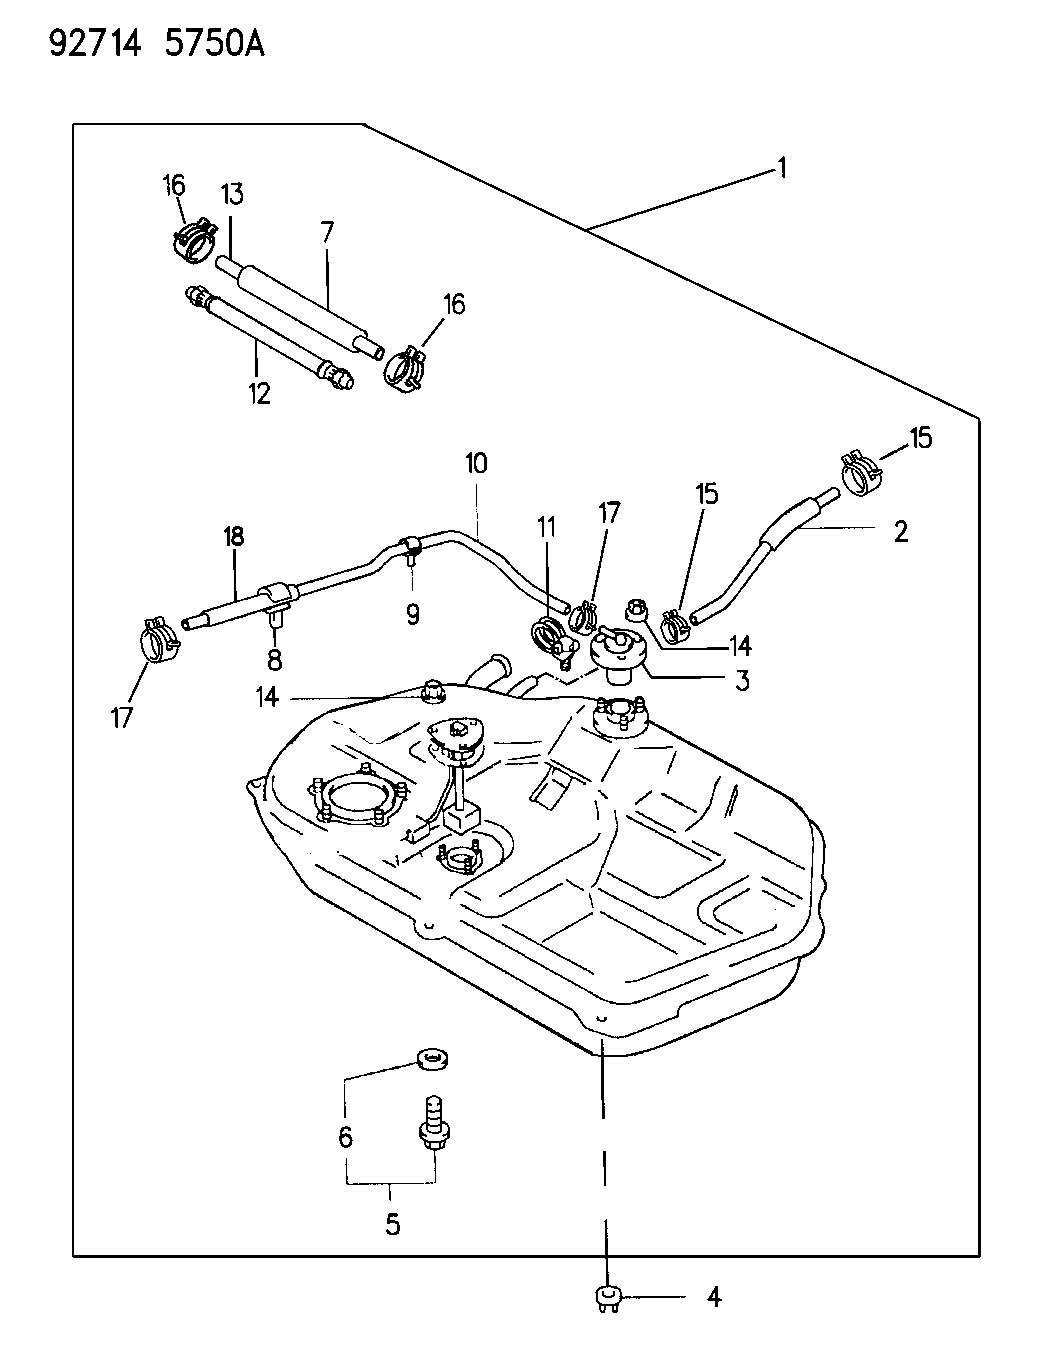 1992 Buick Lesabre Engine Diagram Auto Electrical Wiring Related With